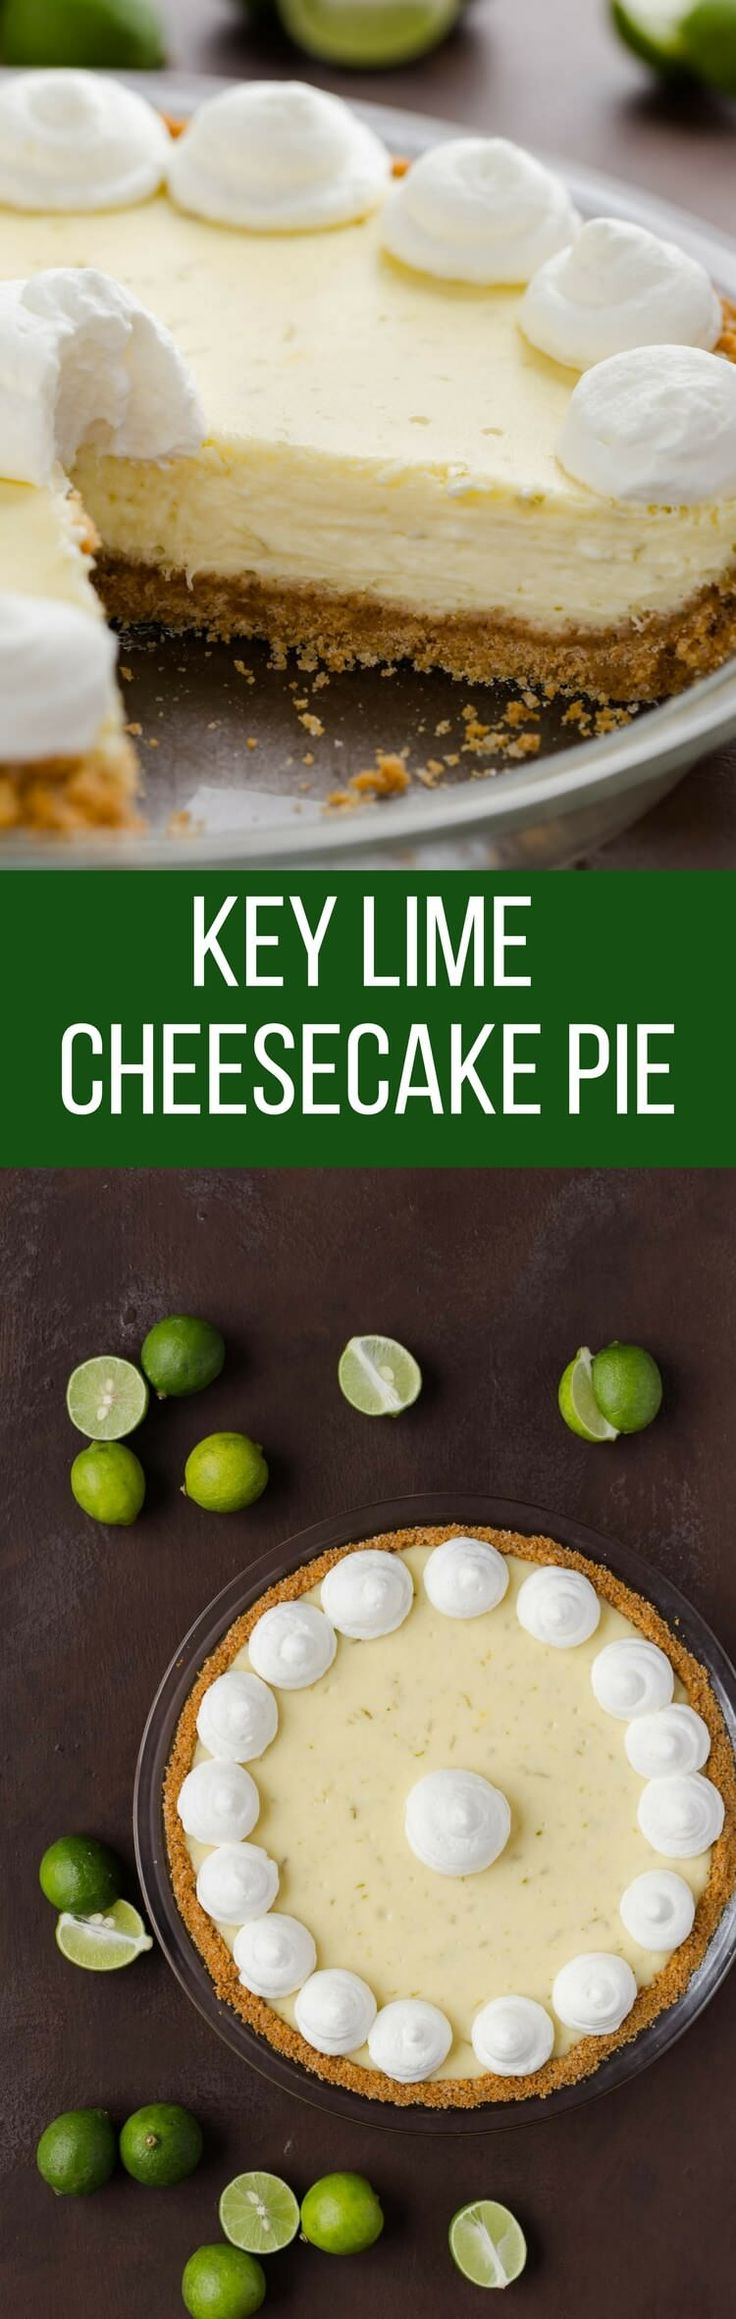 Key Lime Cheesecake Pie Recipe | Pie | Easy | Dessert | Made from Scratch | Homemade